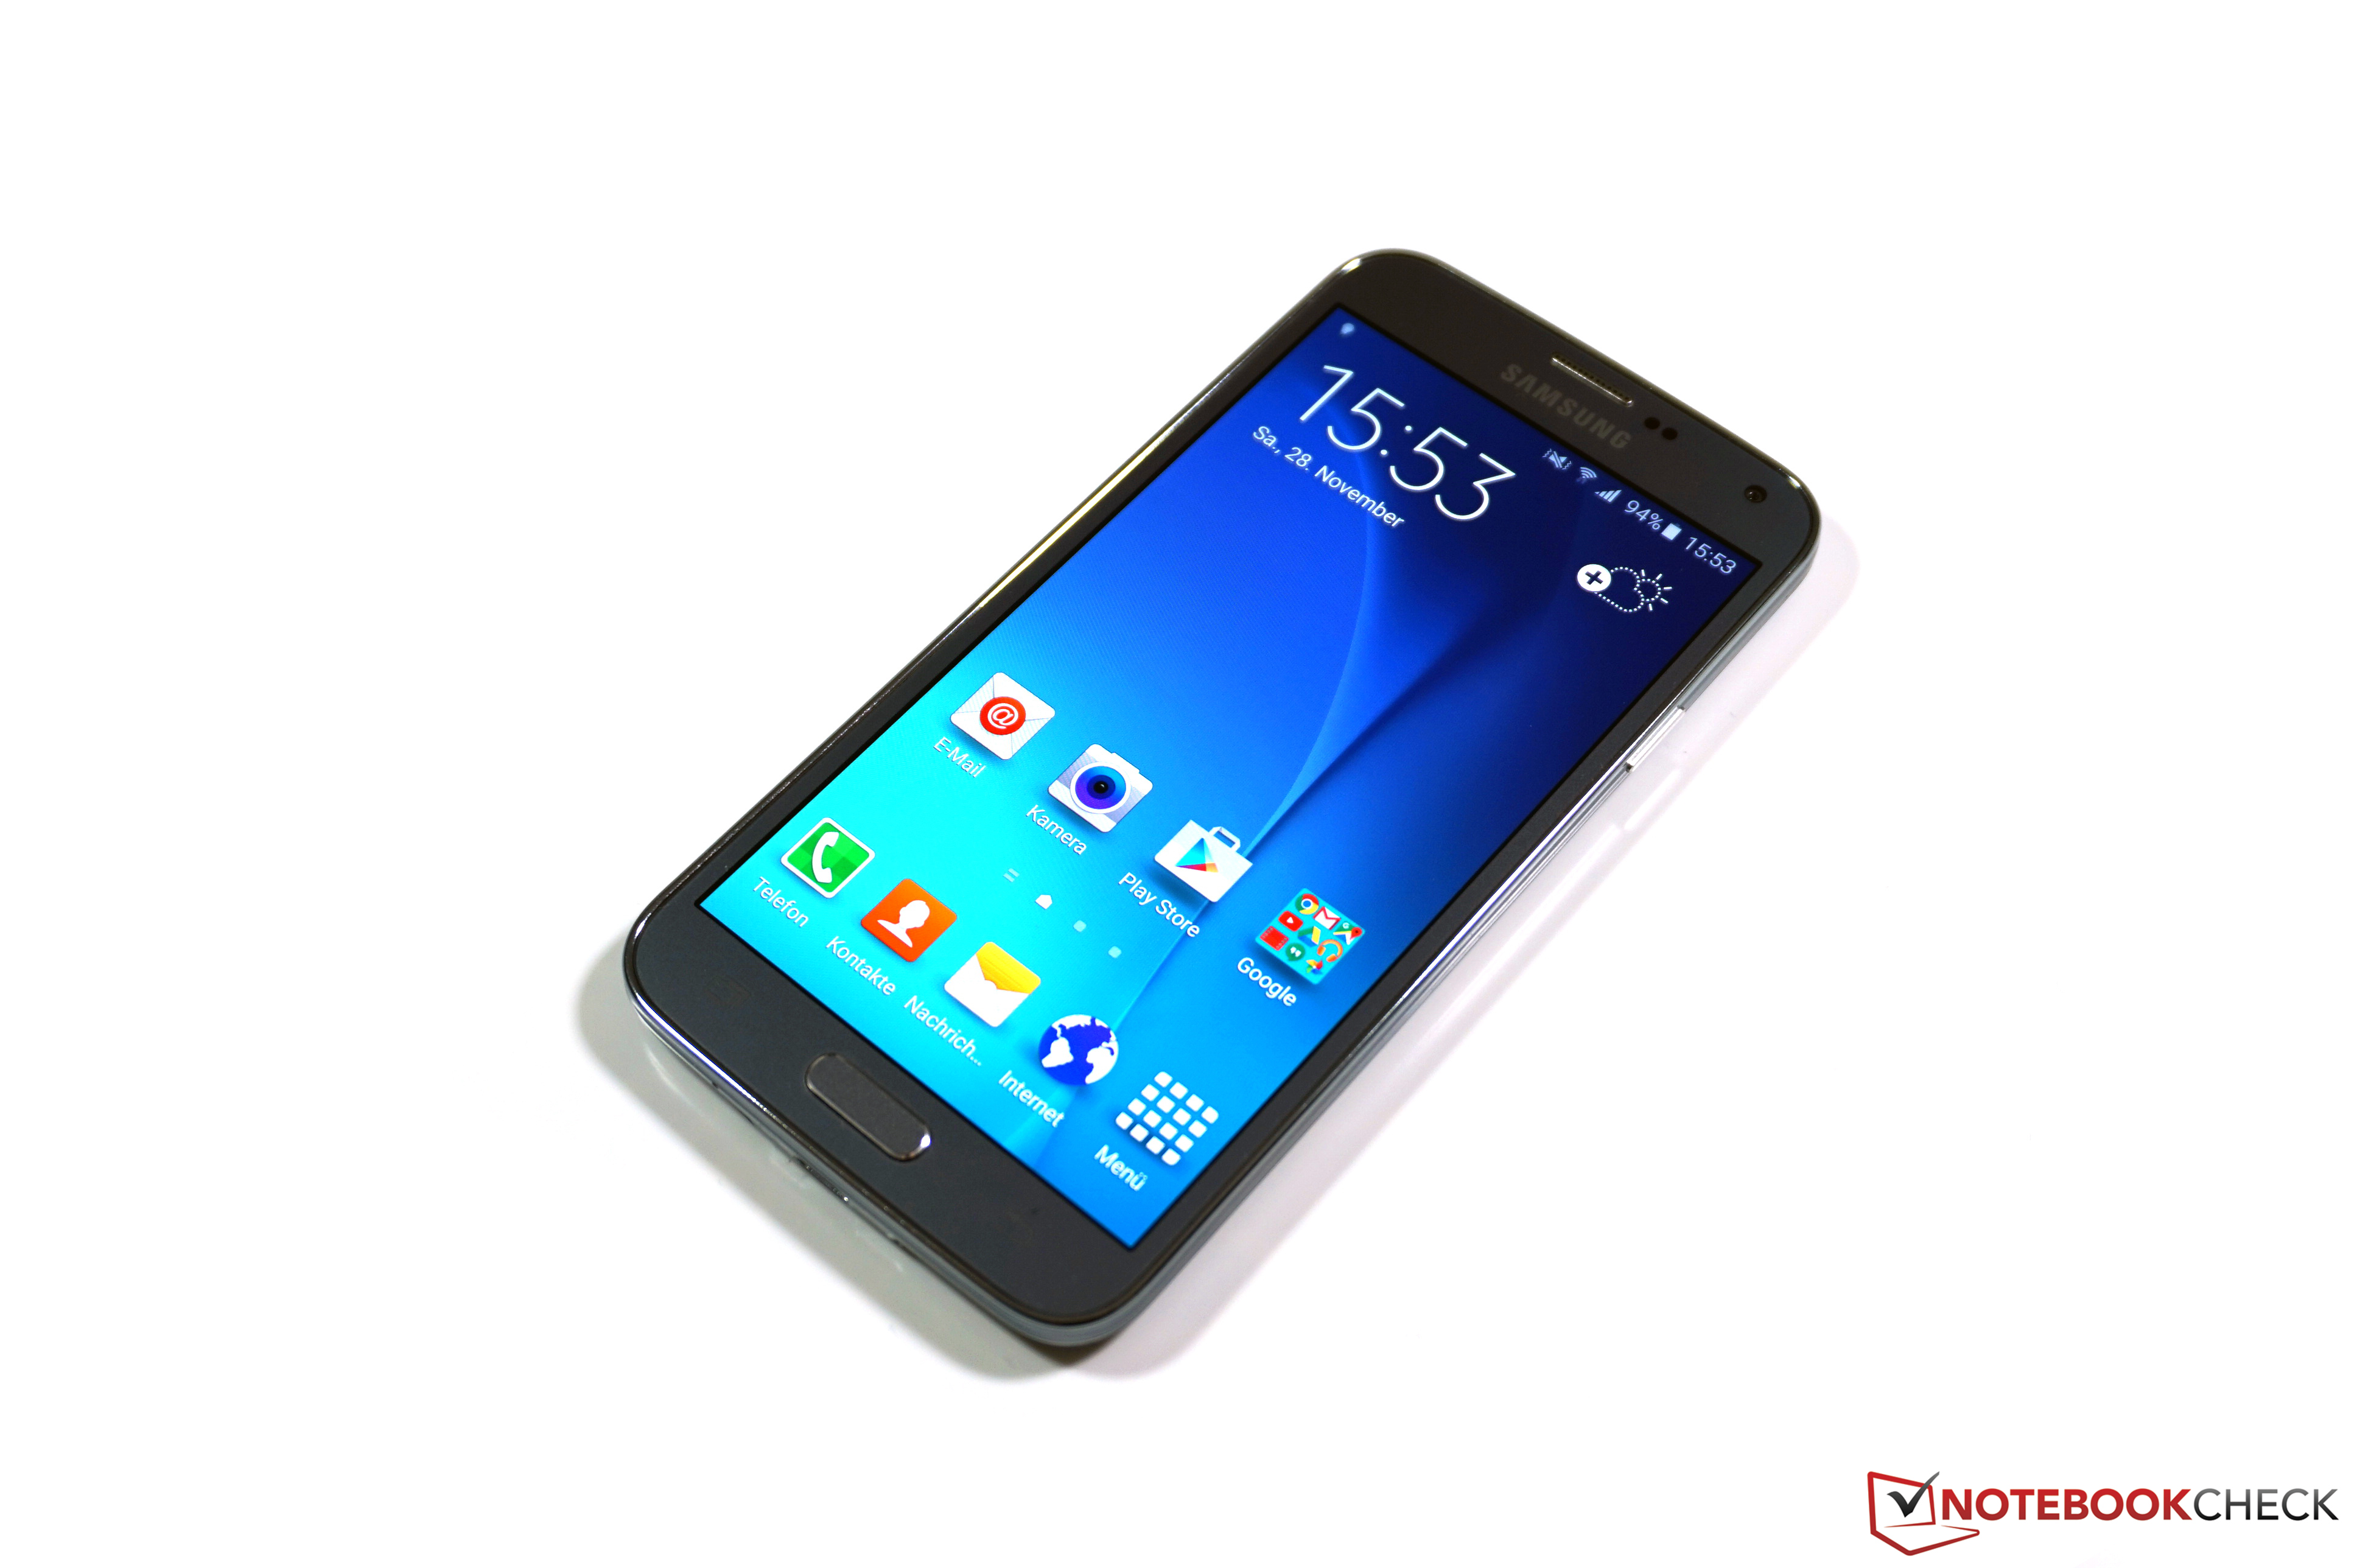 Samsung Galaxy S5 Neo Smartphone Review - NotebookCheck net Reviews